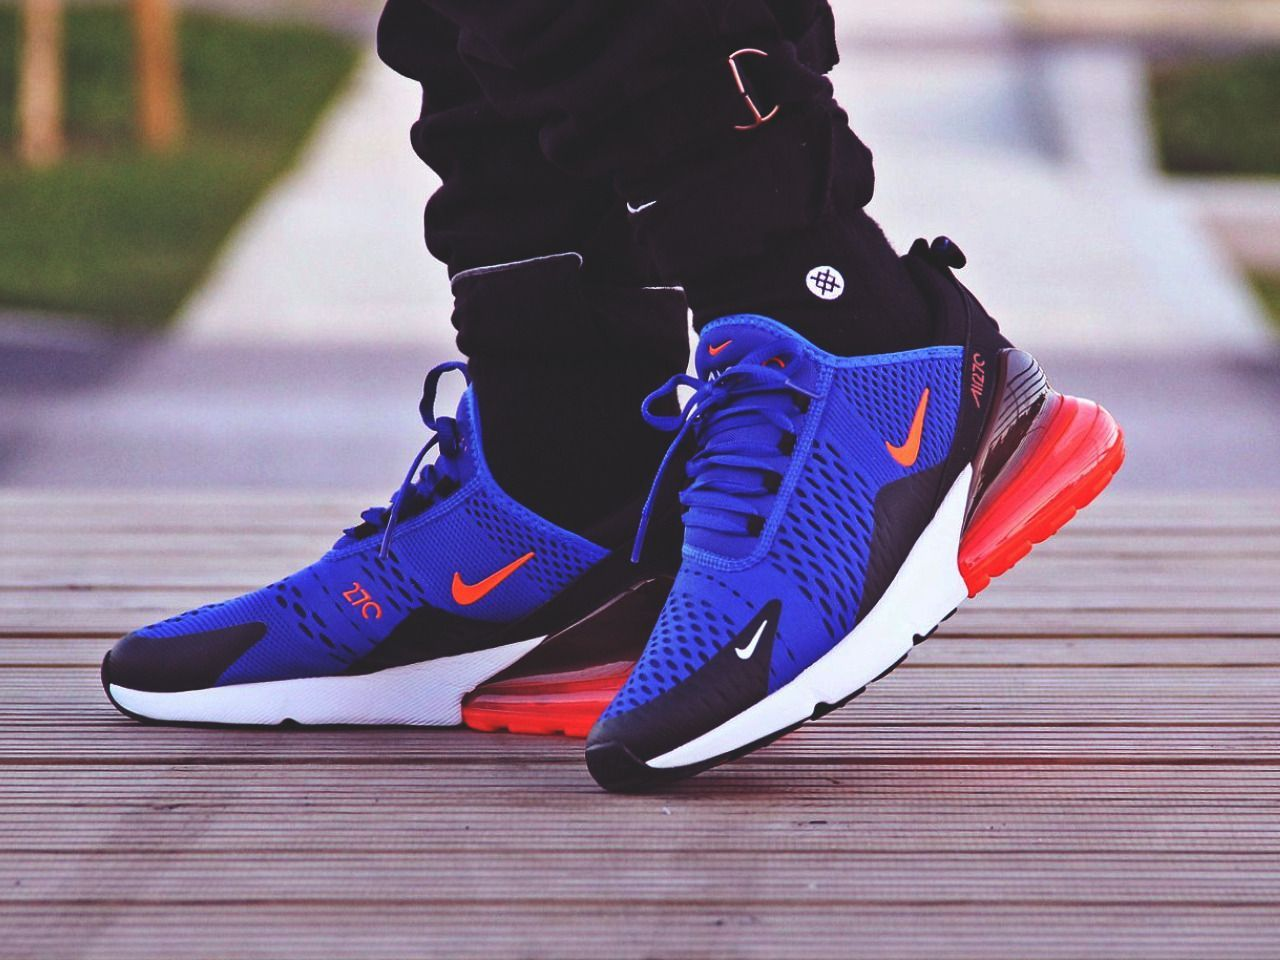 timeless design 5ea90 05976 Nike Air Max 270 - Racer Blue - 2018 (by pedram50) Buy ...